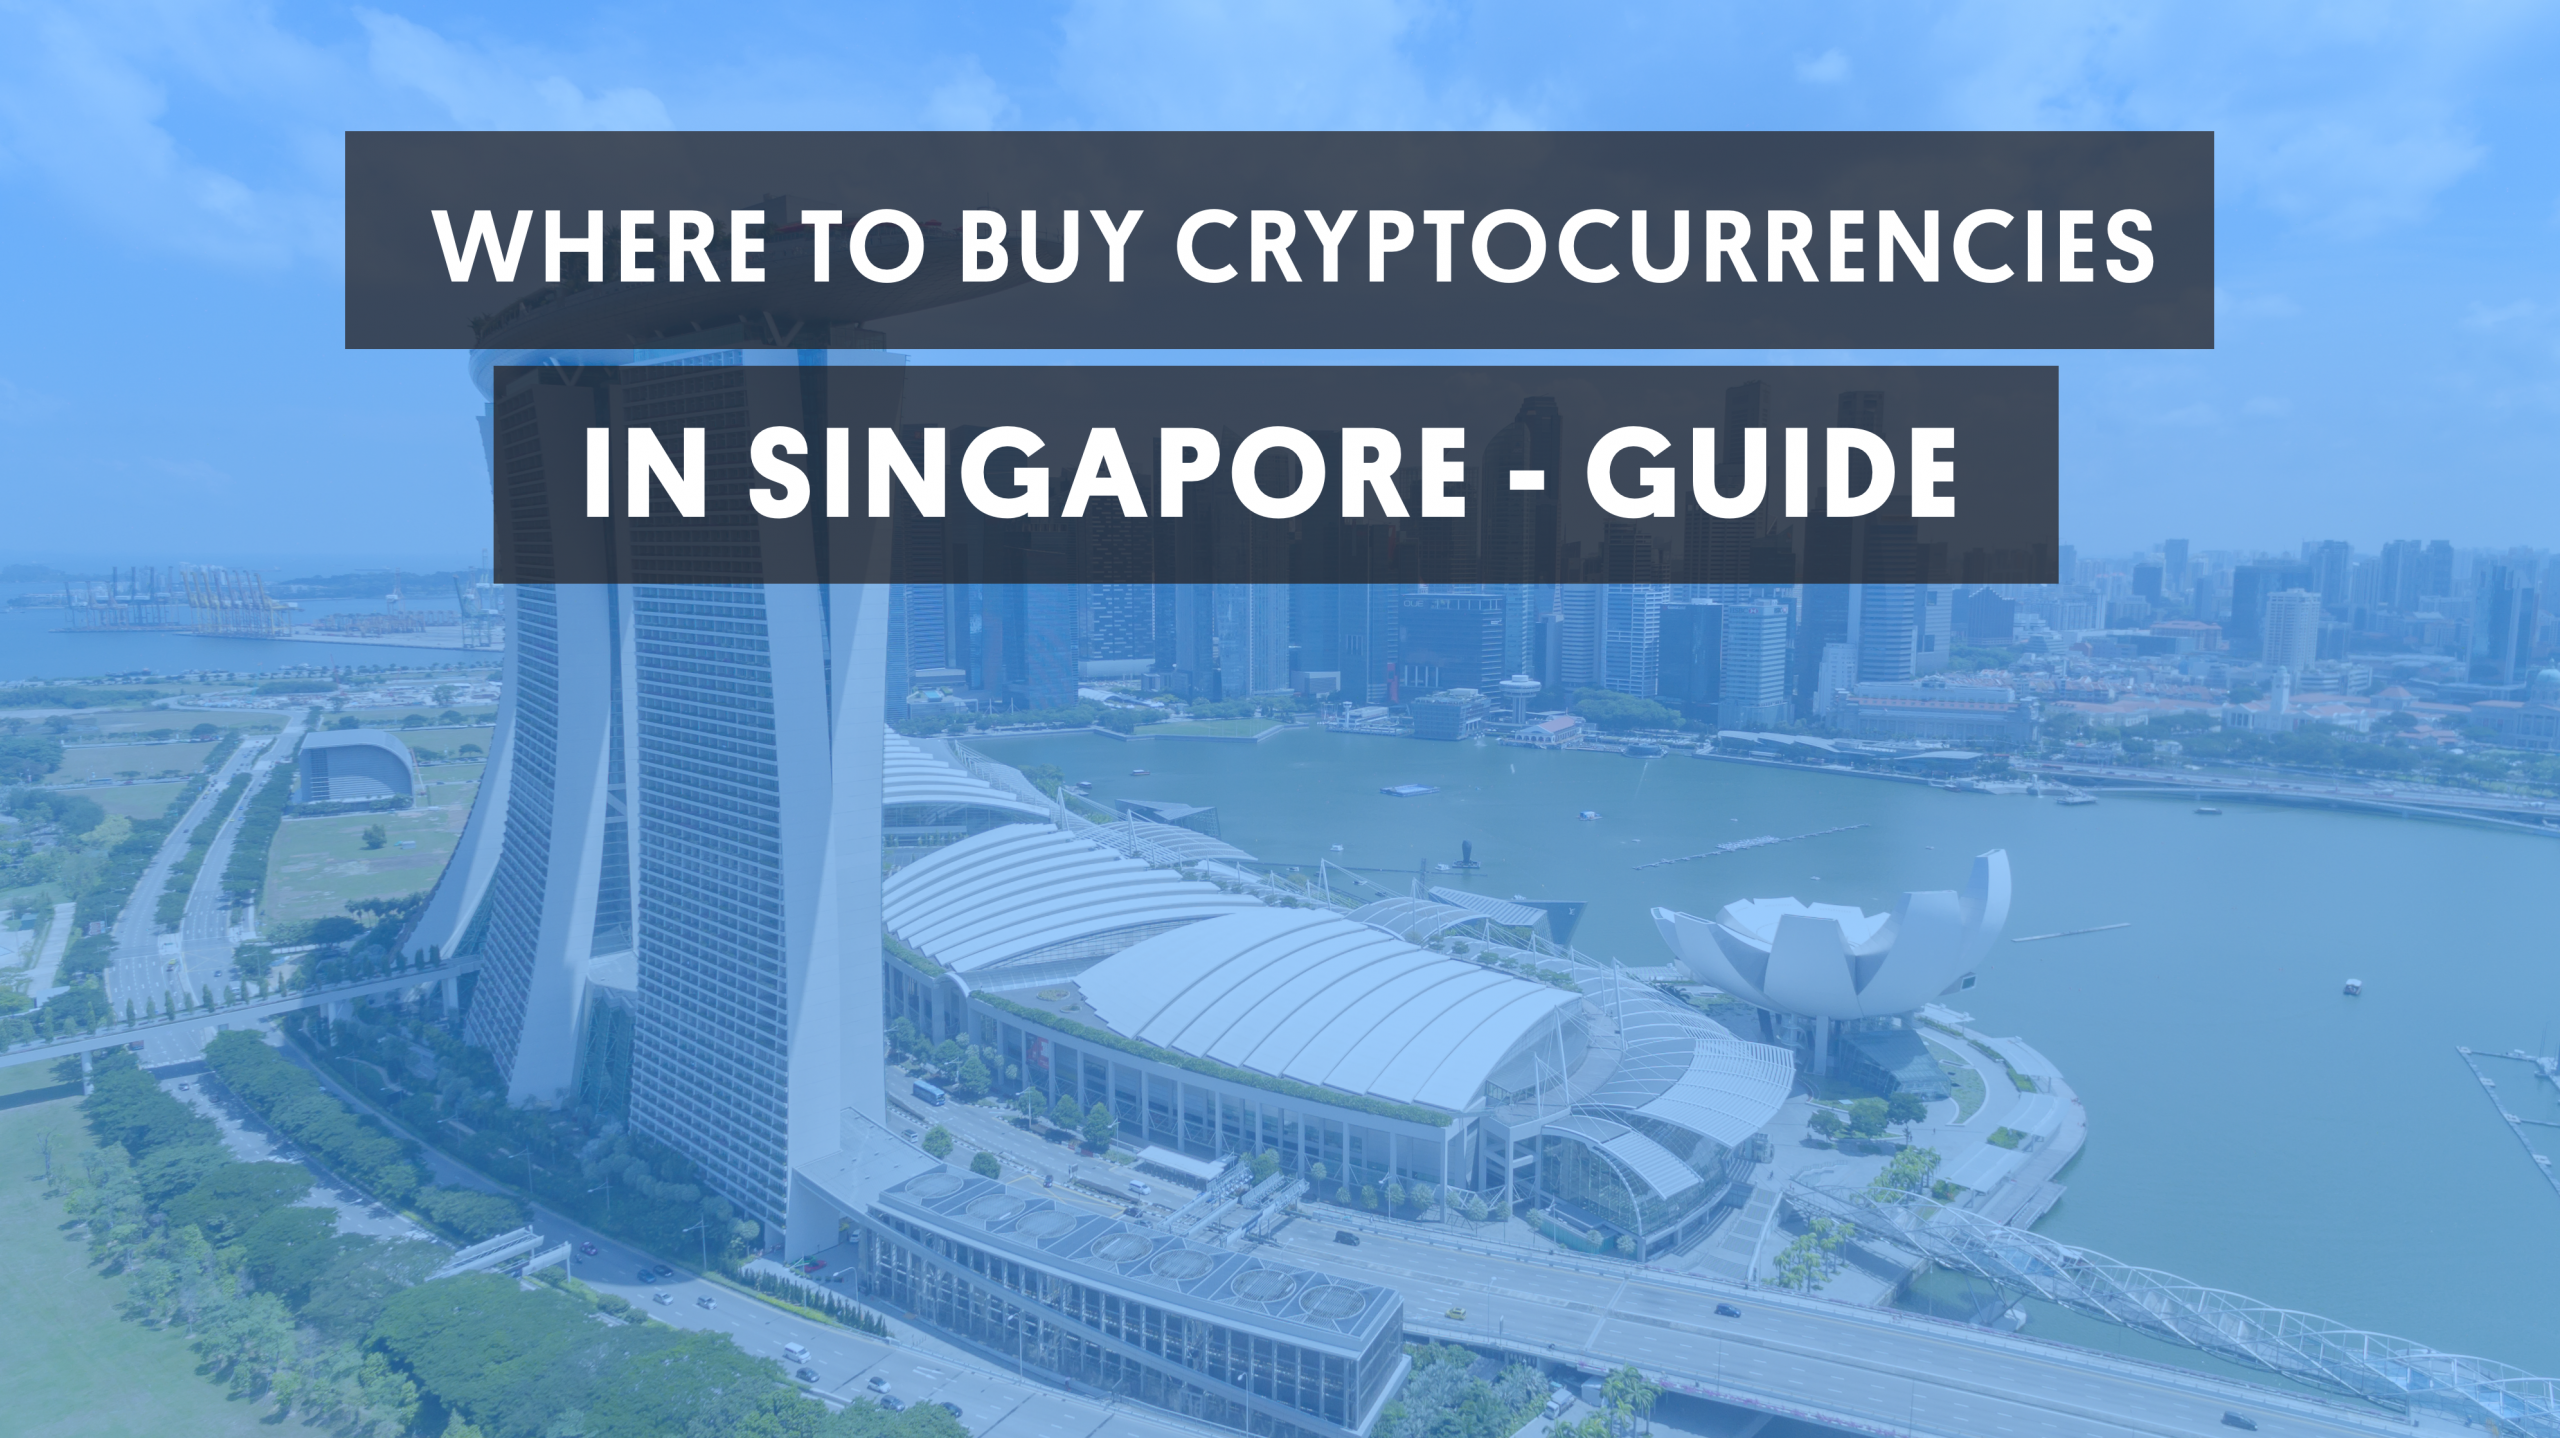 Where to buy cryptocurrencies in Singapore guide